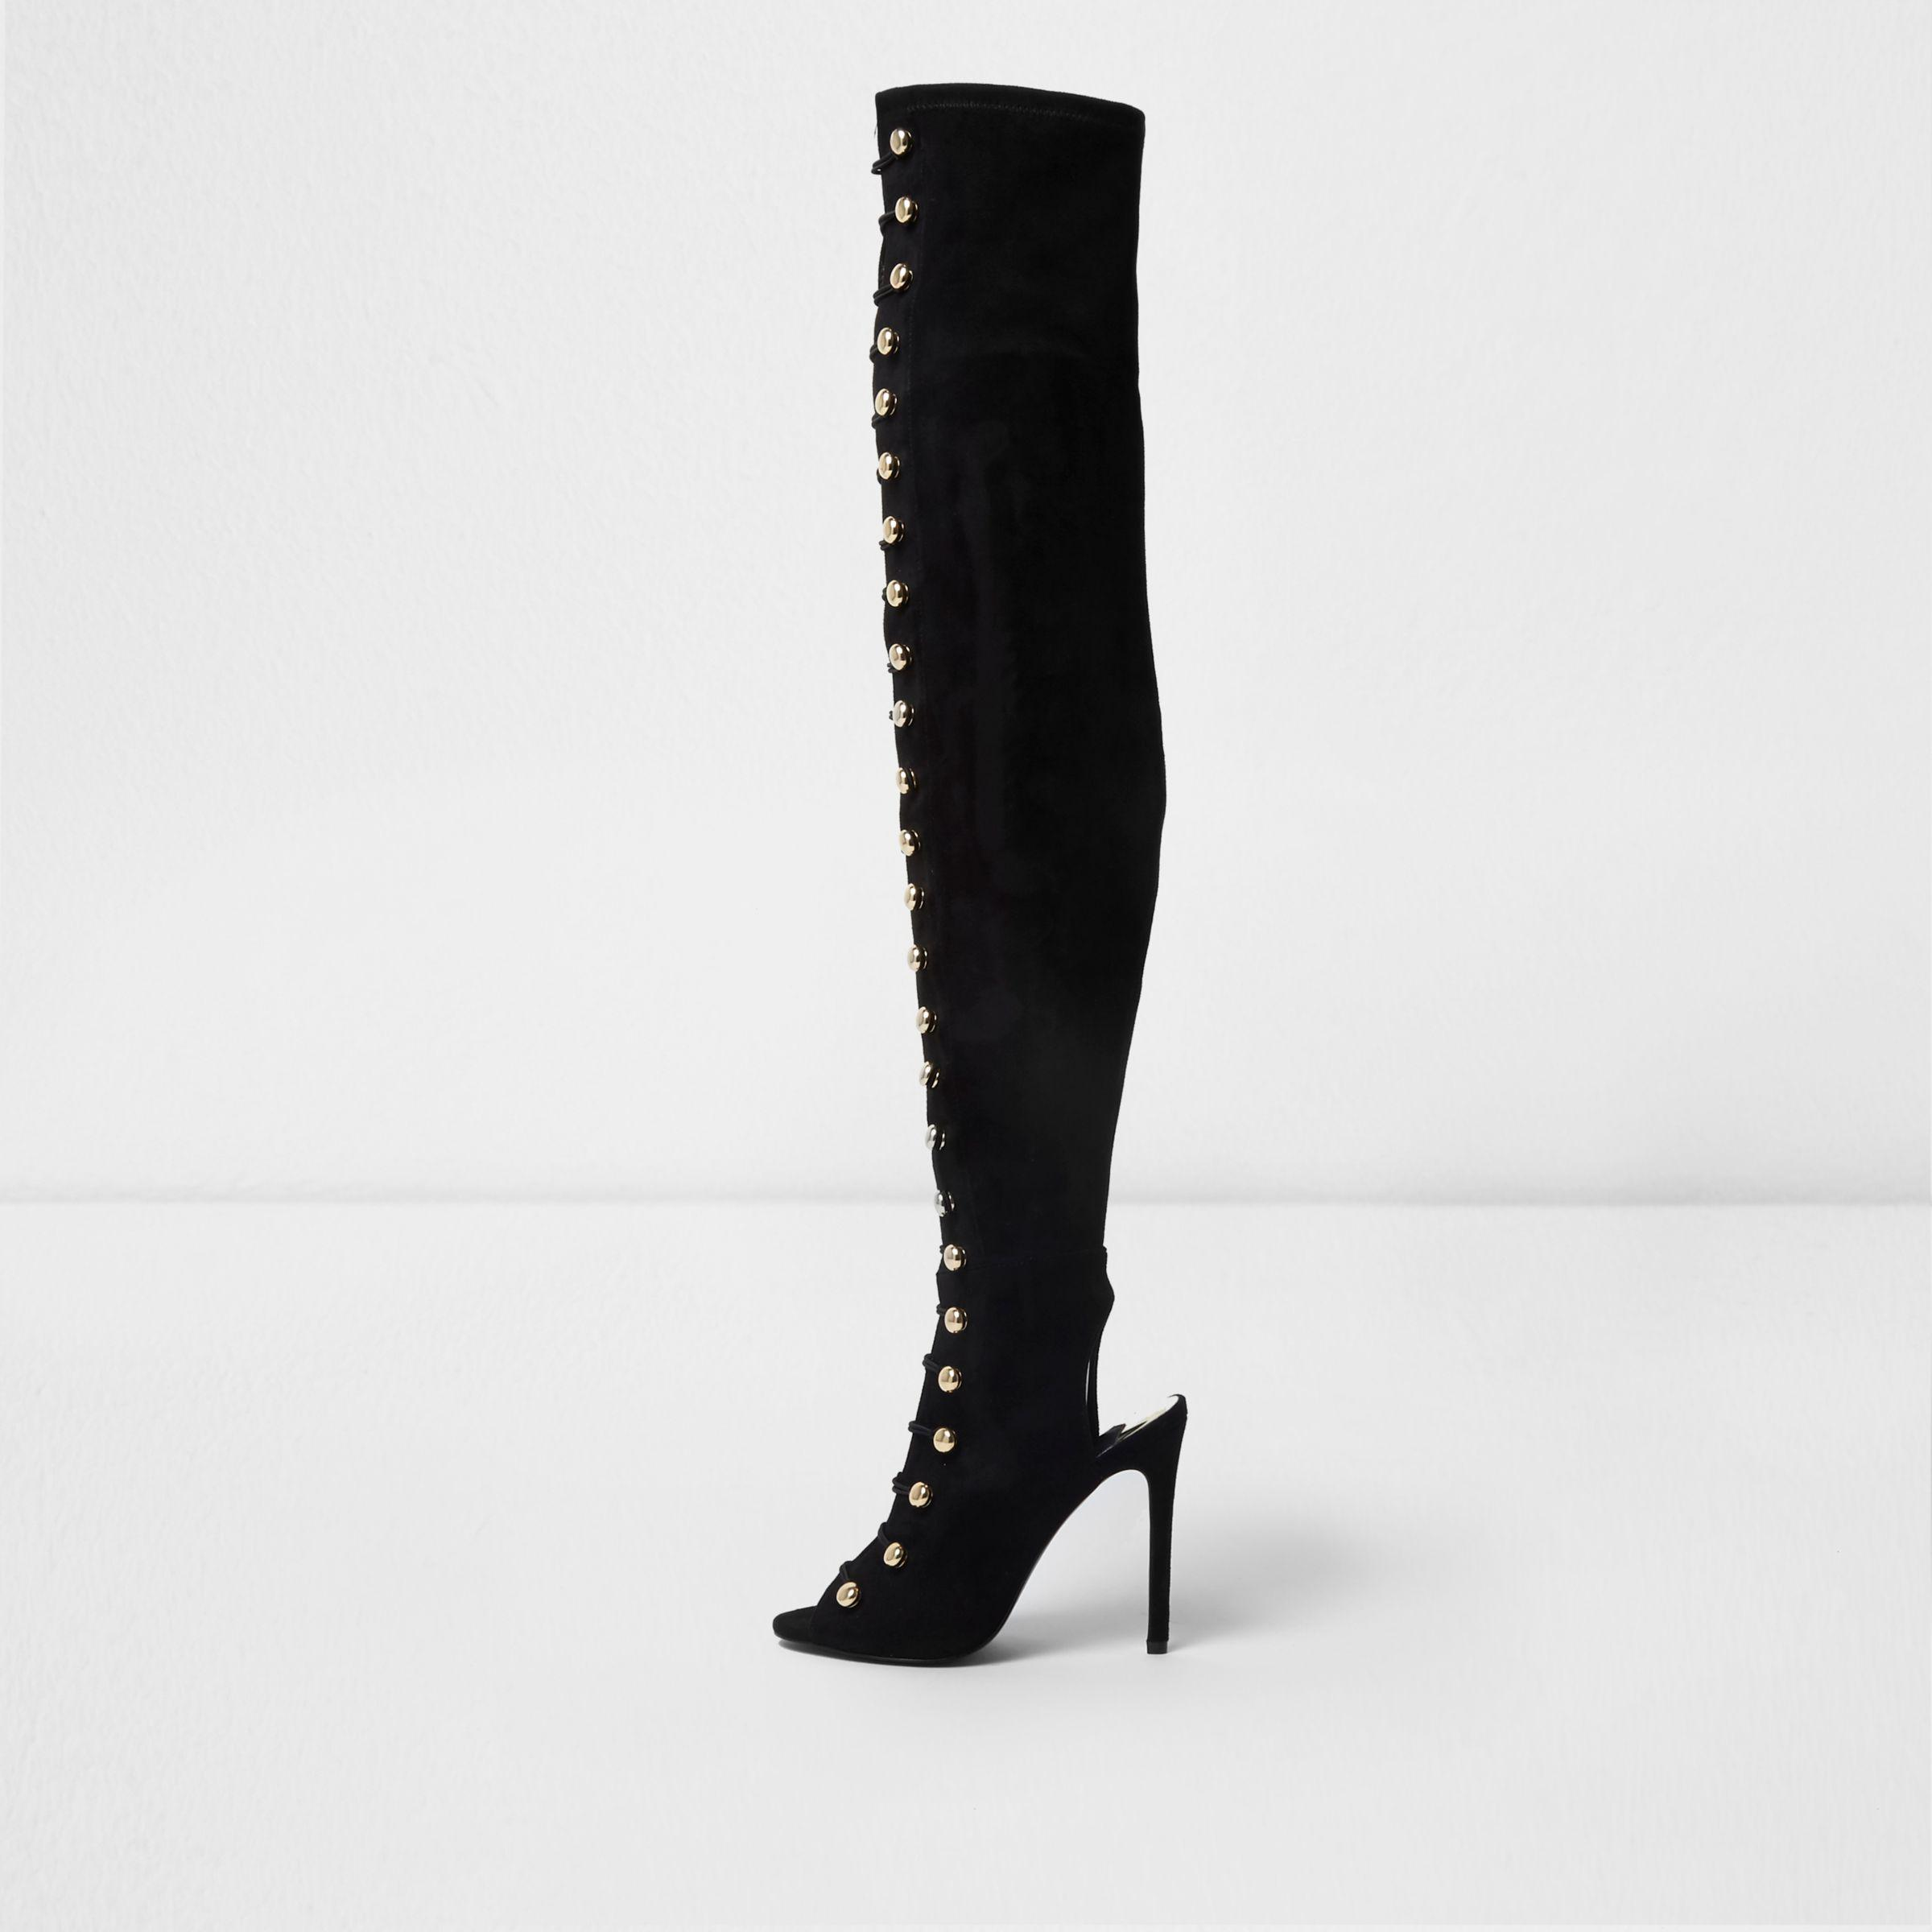 8c97738dc3af River Island Black Over The Knee Peep Toe Military Boots in Black - Lyst